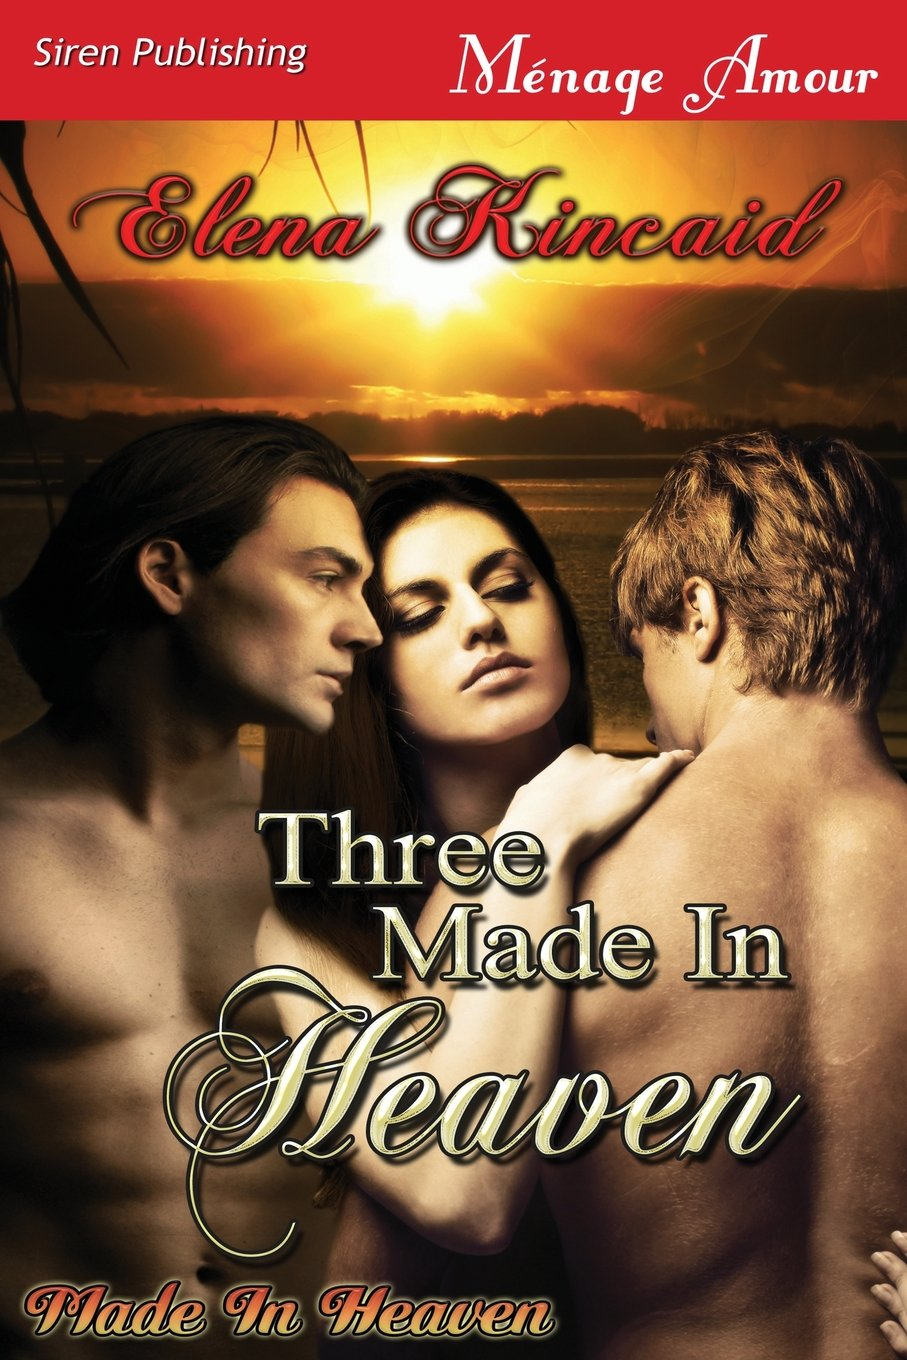 Three Made in Heaven [Made in Heaven] (Siren Publishing Menage Amour) pdf